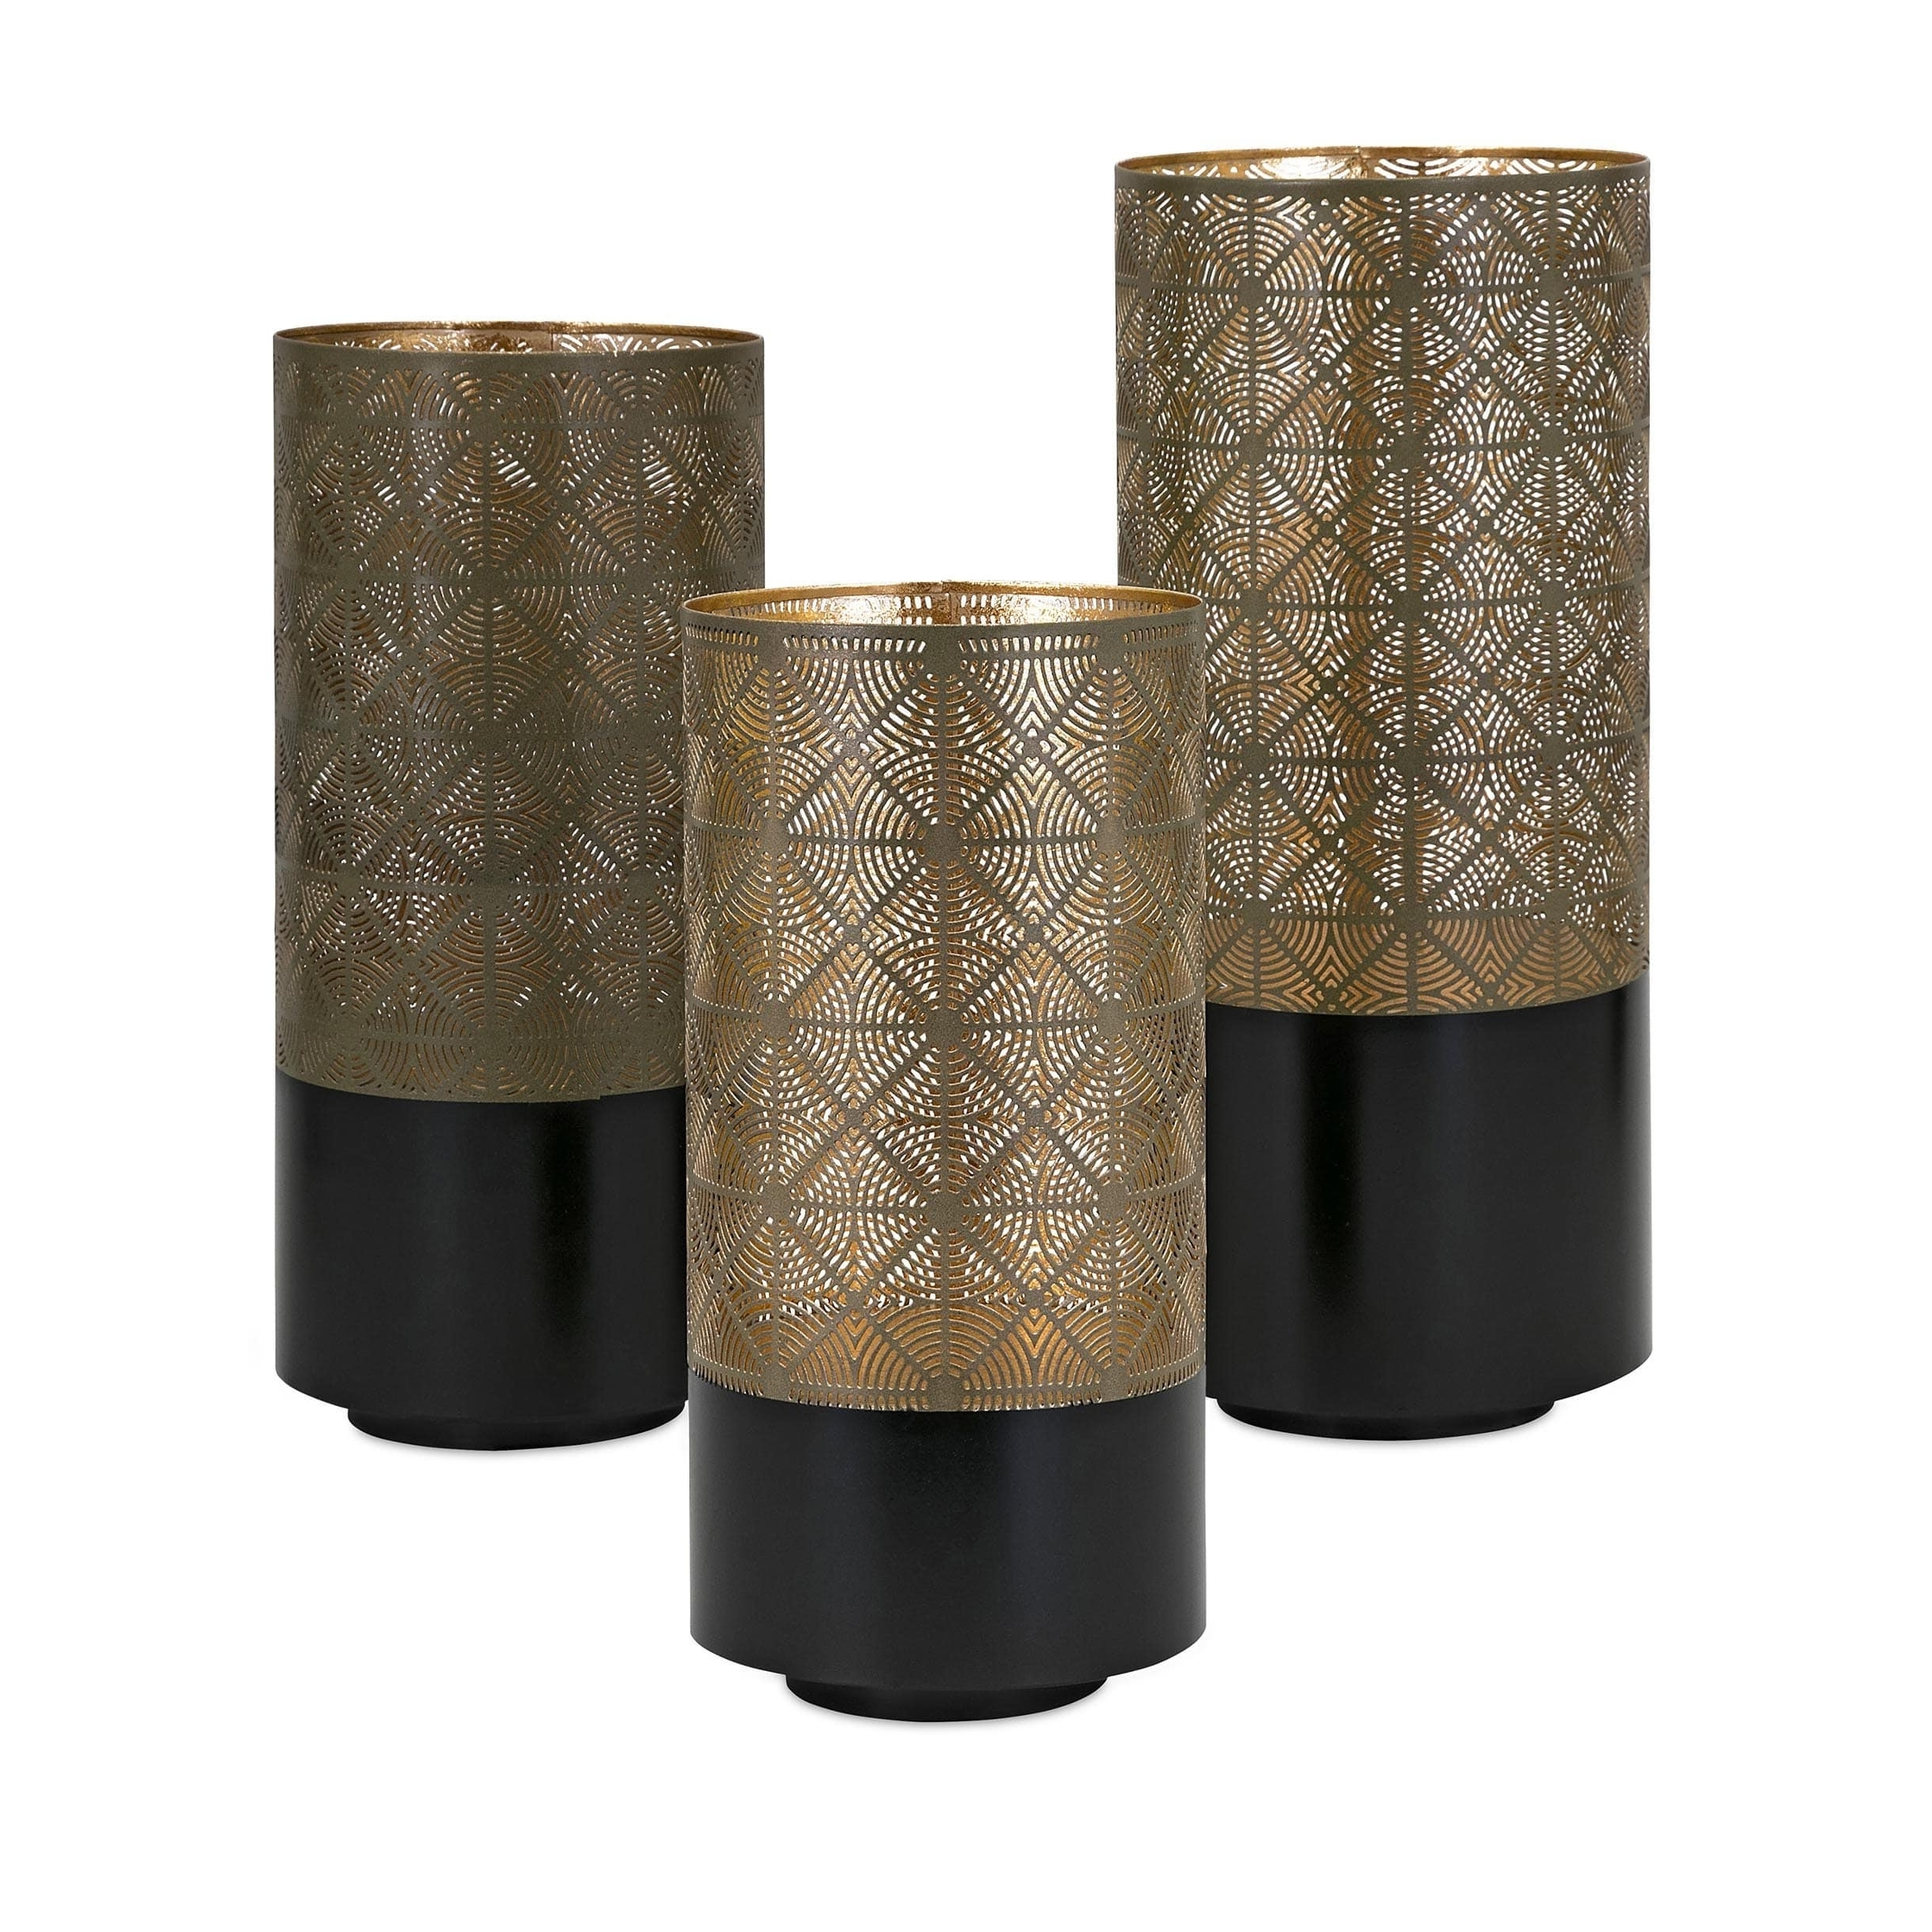 Famous Set Of 3 Outdoor Lanterns In Manhattan Pierced Outdoor Lanterns (Set Of 3) – Free Shipping Today (View 13 of 20)